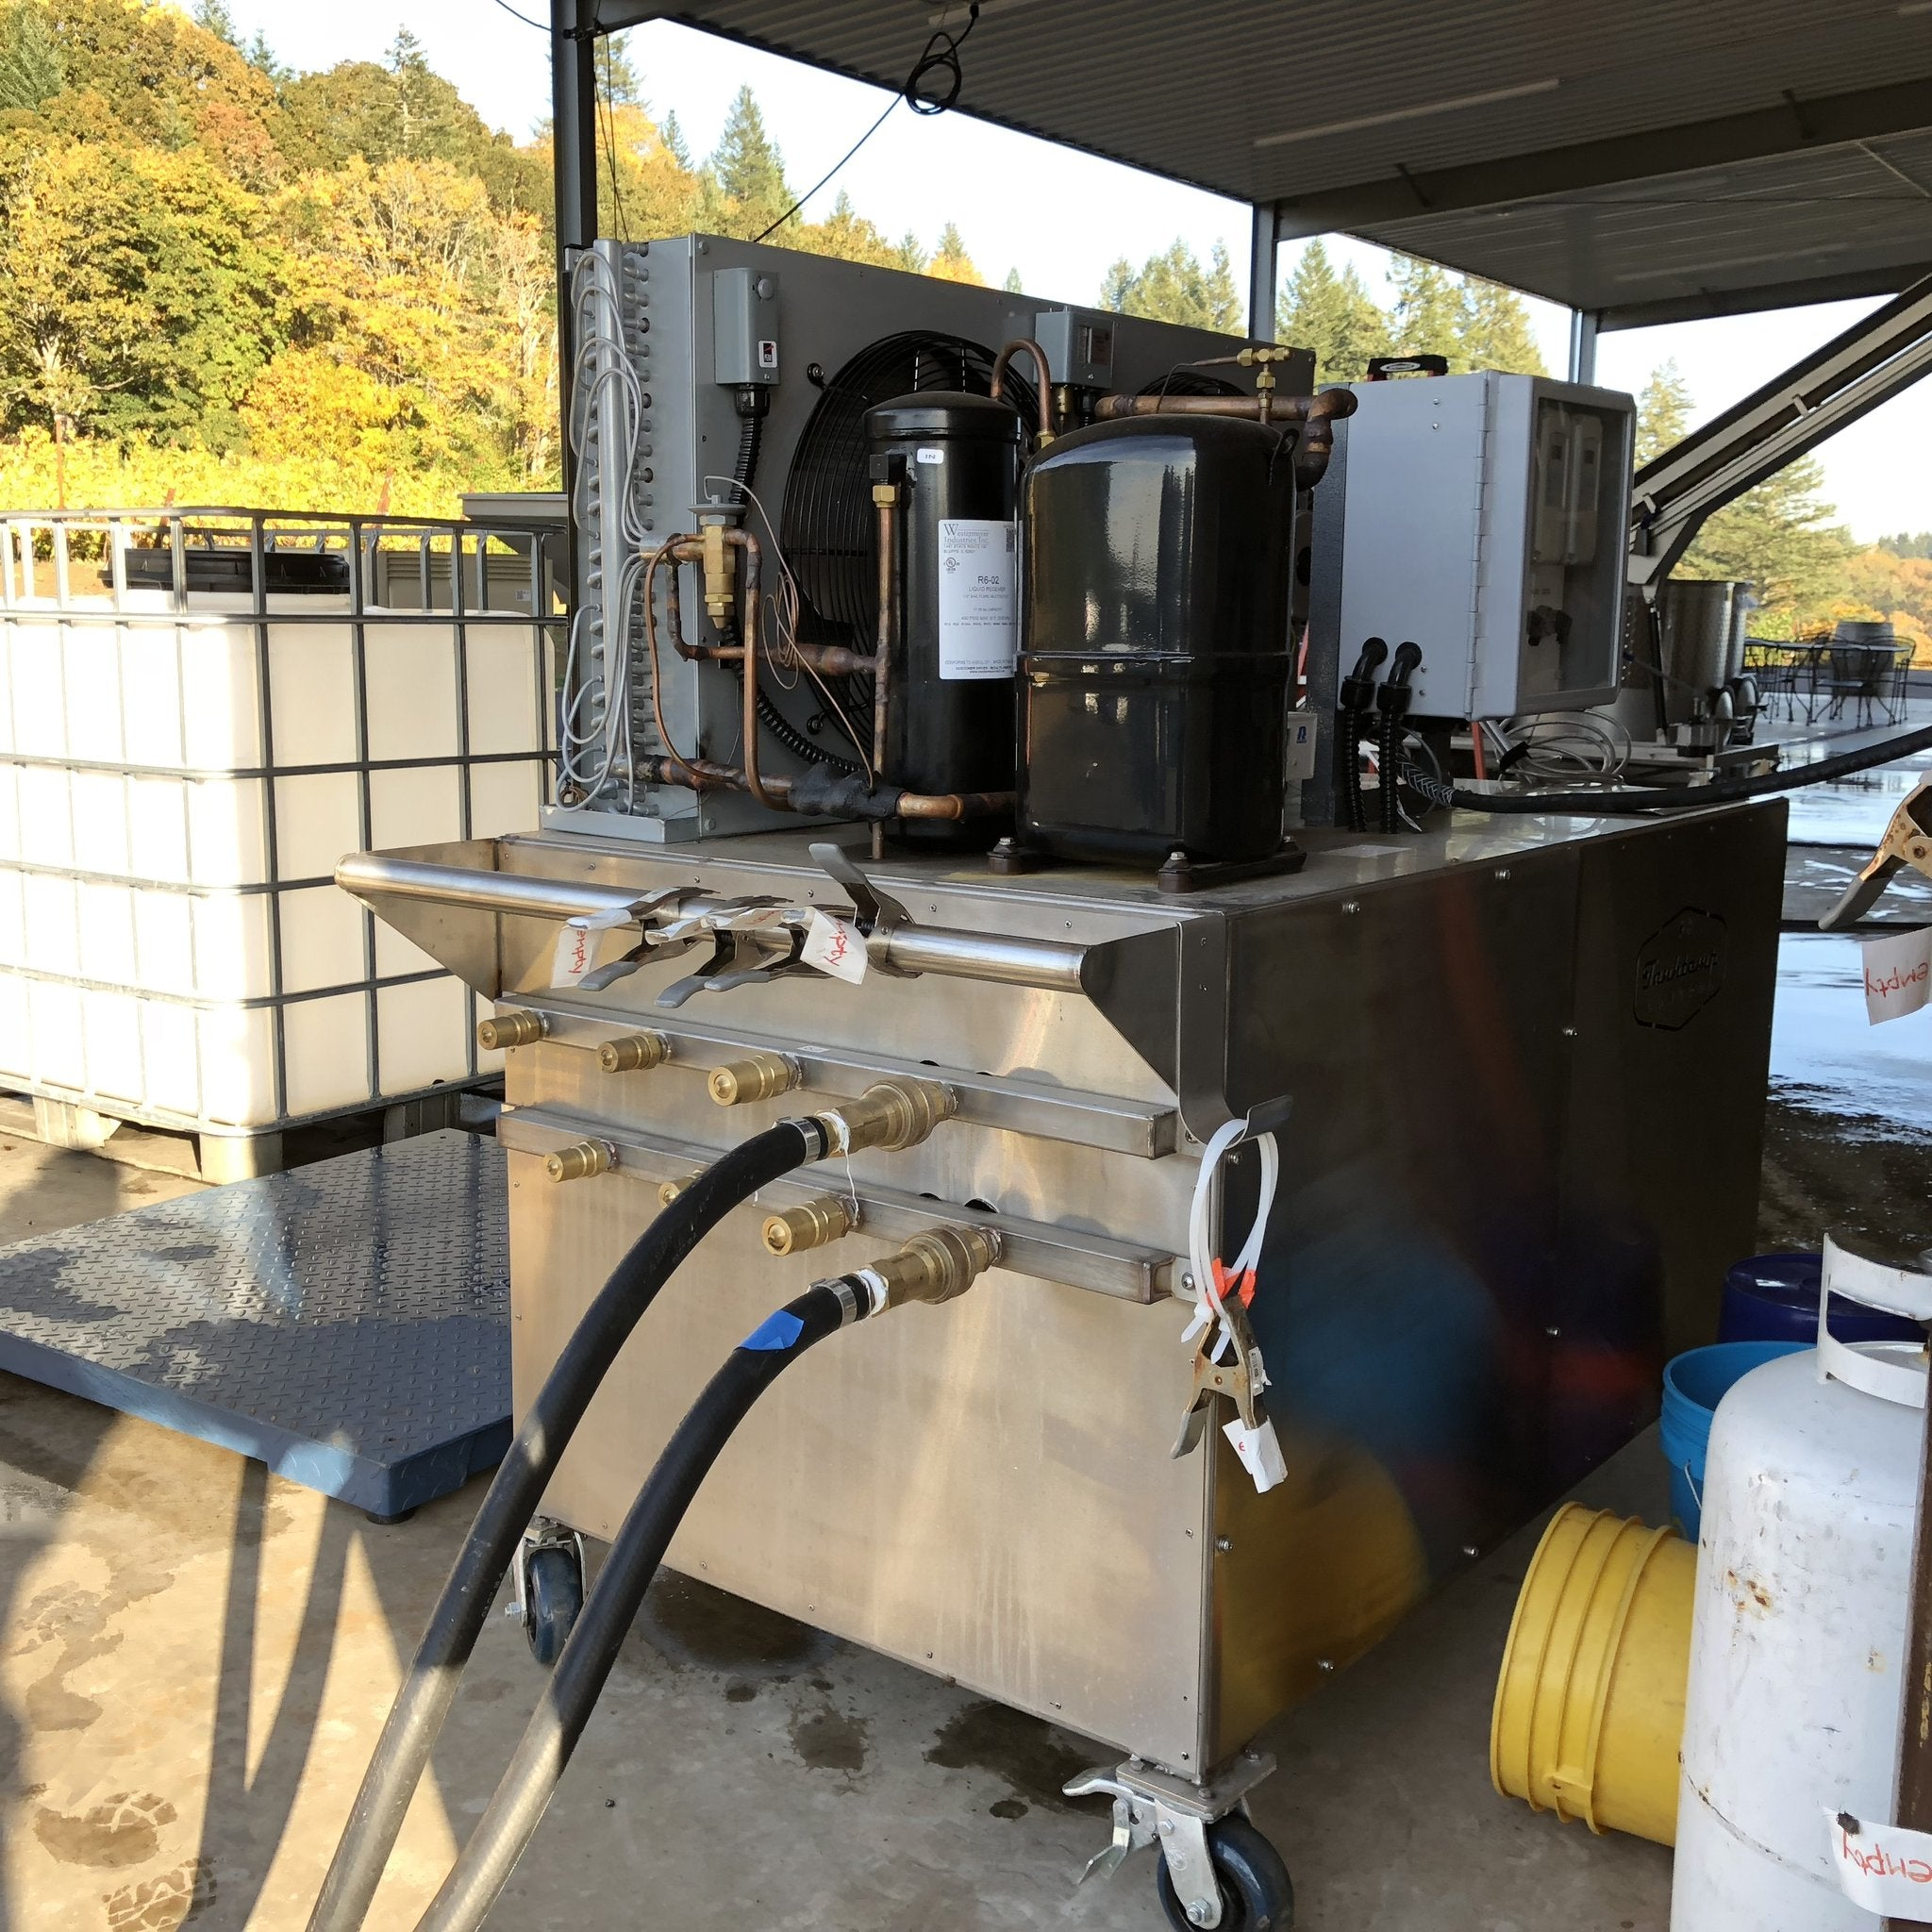 GETTING THE MOST OUT OF YOUR GLYCOL EQUIPMENT